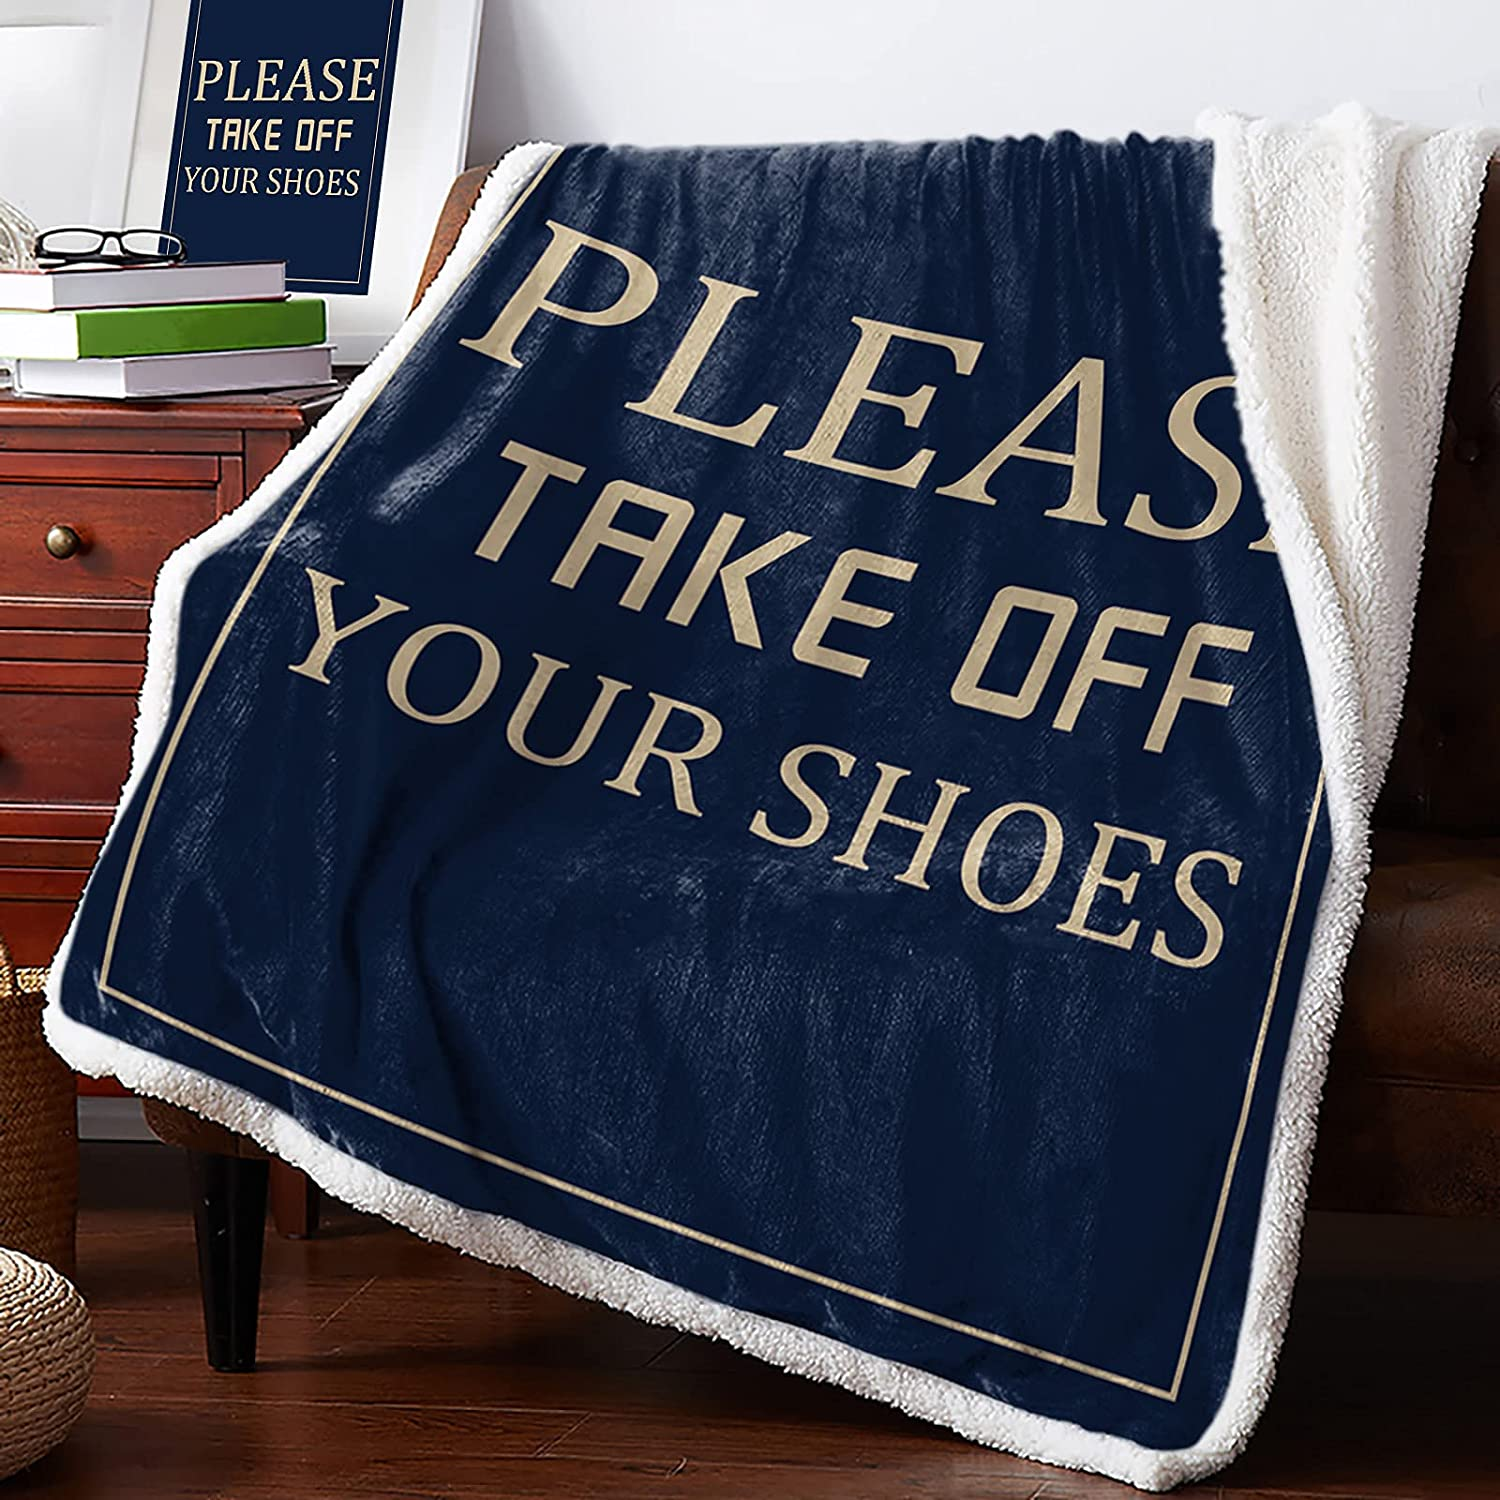 Warm Soft Fleece Throw Blanket Please Shoes - Coz Off Nashville-Davidson Mall Your Take Max 67% OFF